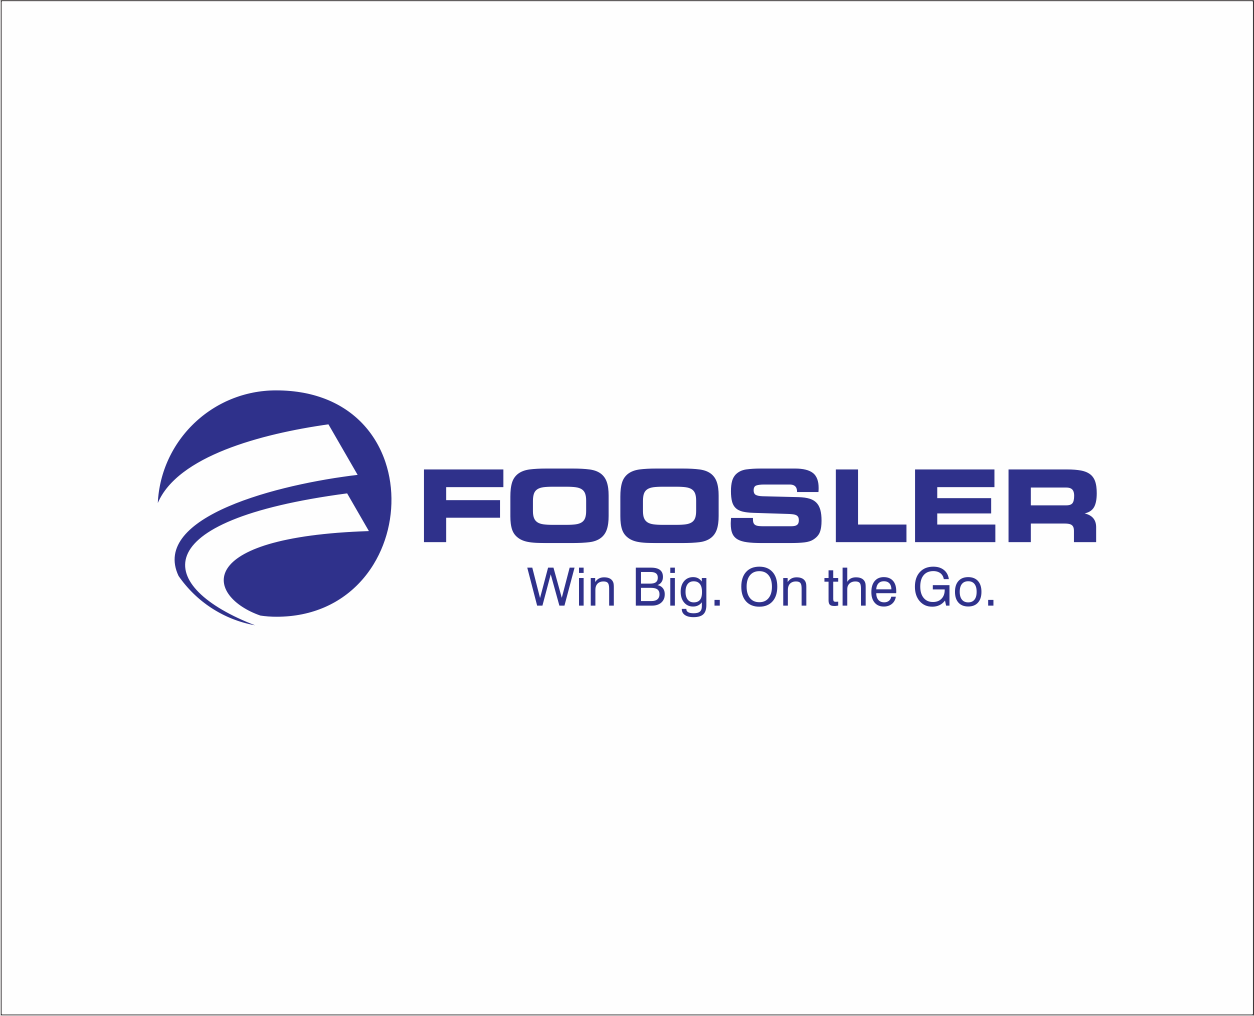 Logo Design by Armada Jamaluddin - Entry No. 84 in the Logo Design Contest Foosler Logo Design.